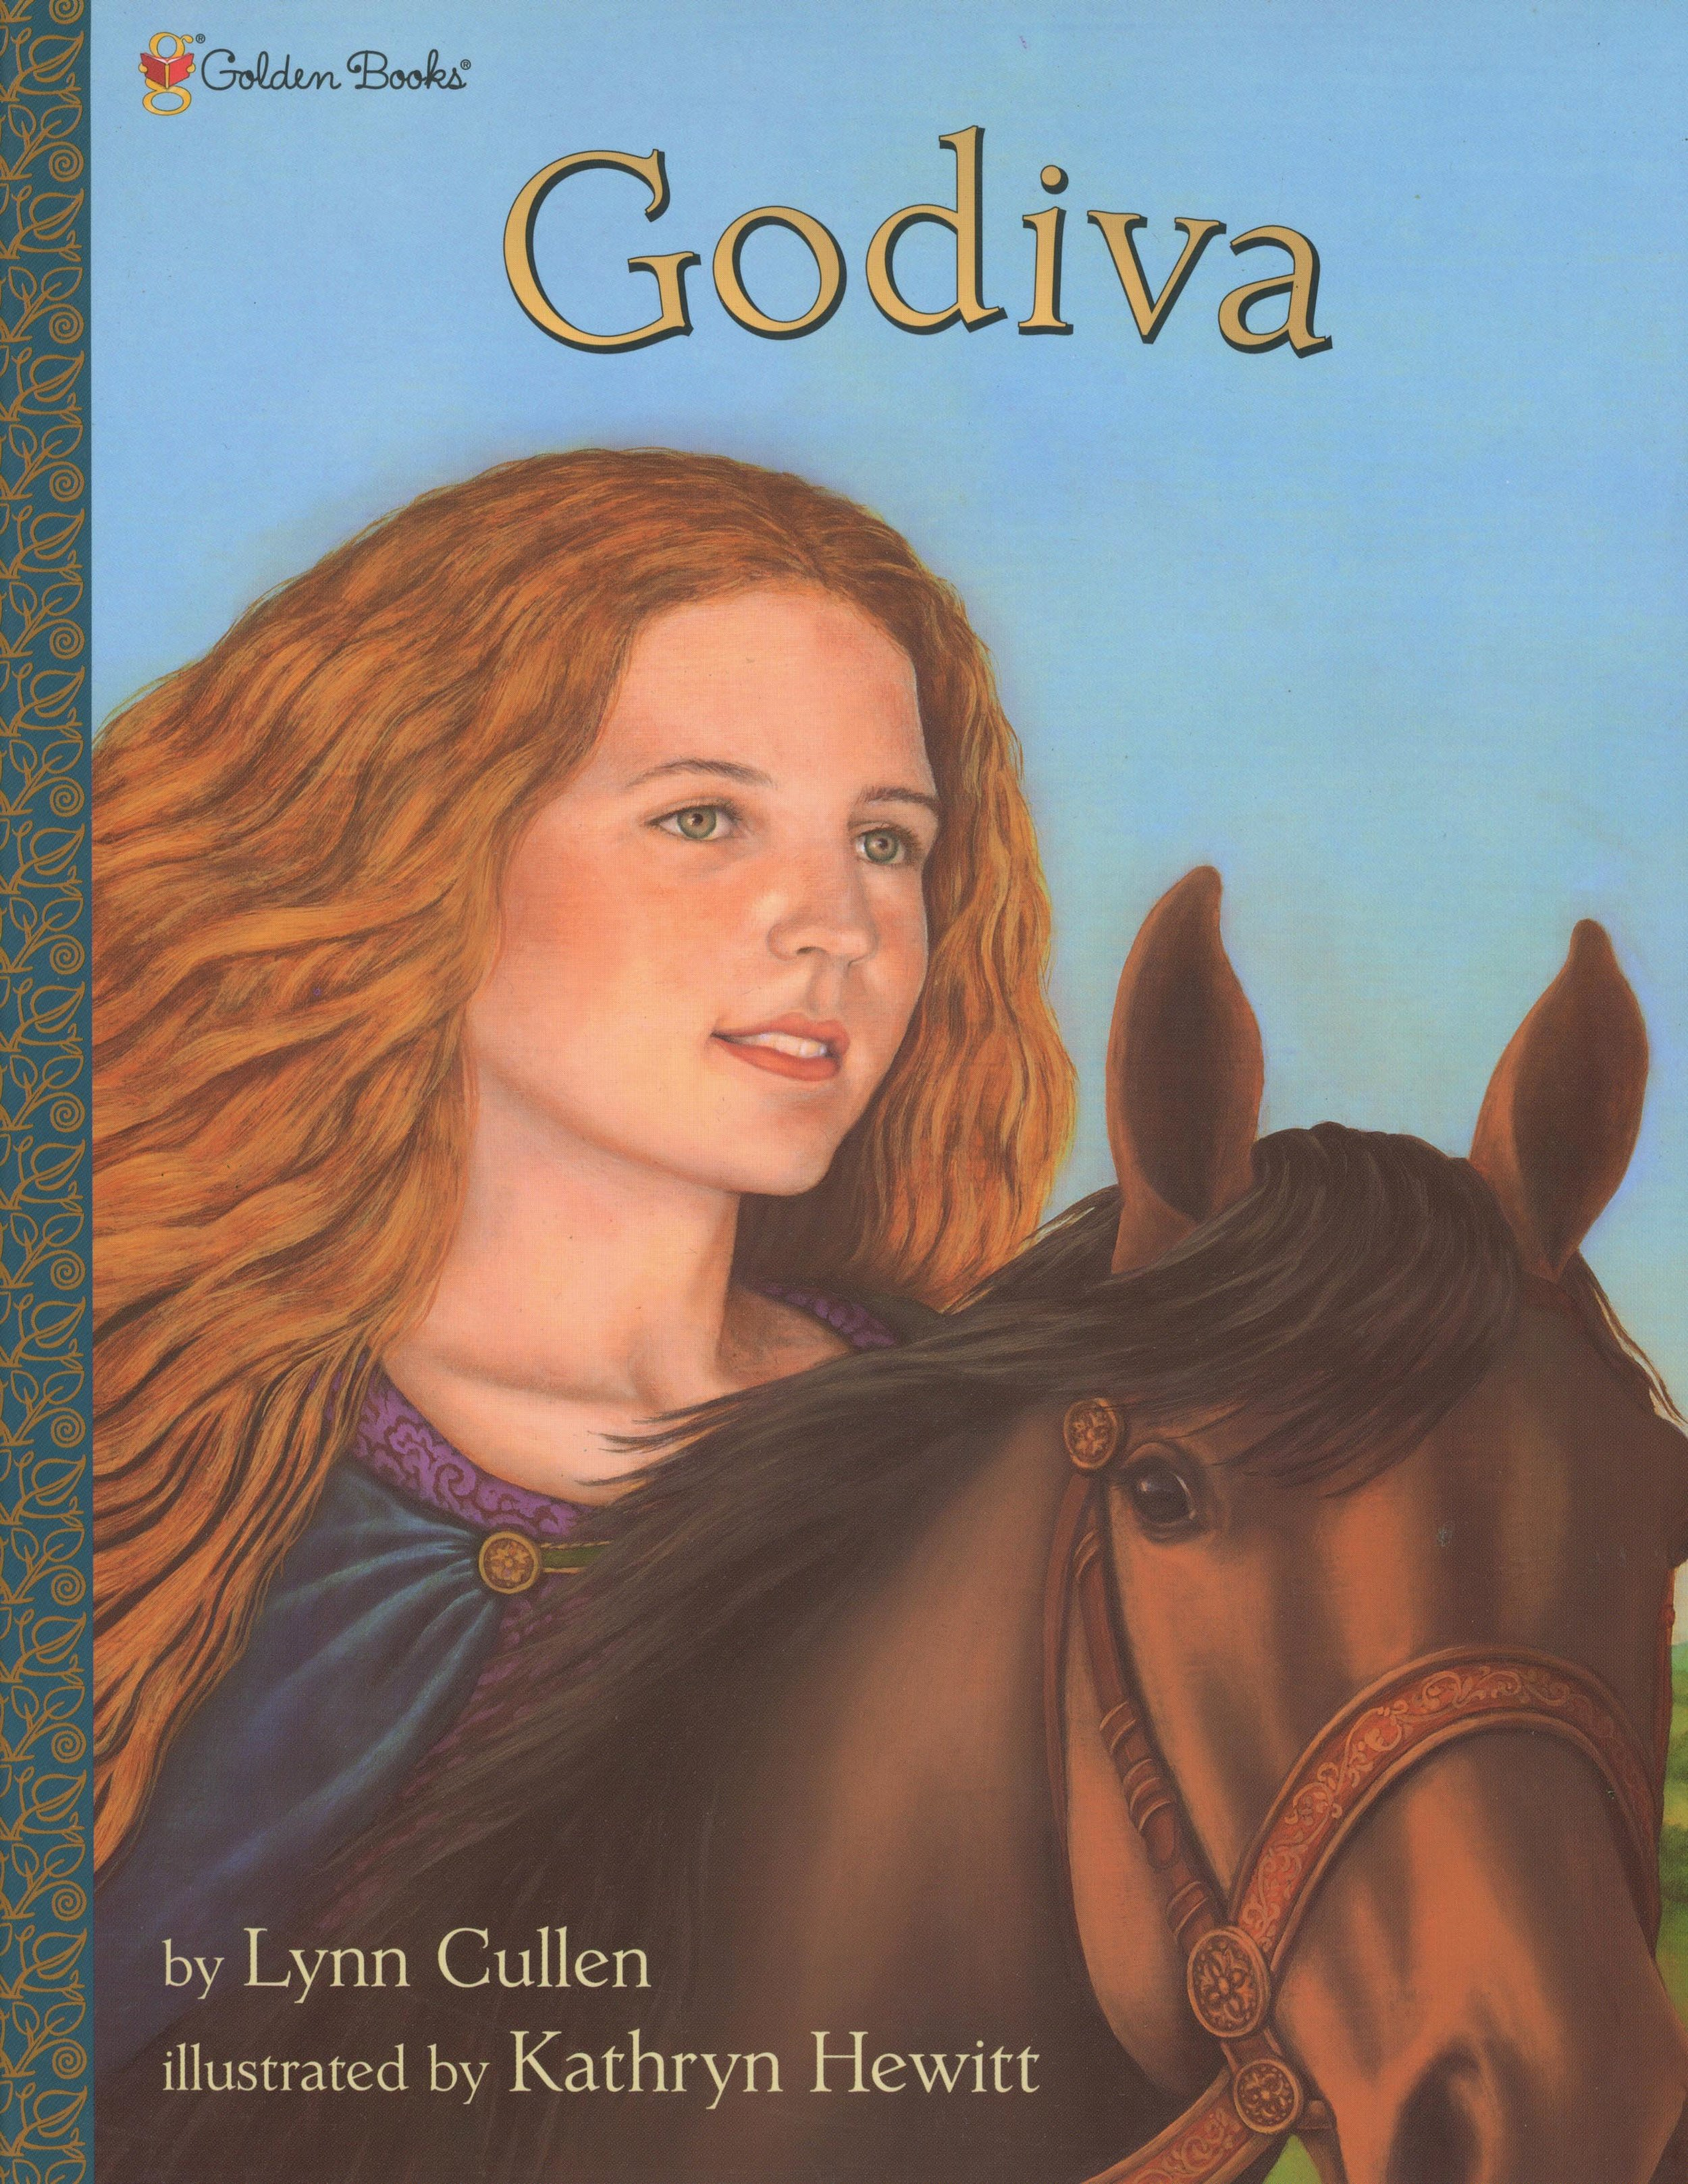 Godiva - Lynne Cullen, illustrated by Kathryn HewittGolden Books 2001With only her long hair as a cloak, Lady Godiva takes her heroic ride through the English village of Coventry in exchange for her husband's promise to lower the people's taxes.